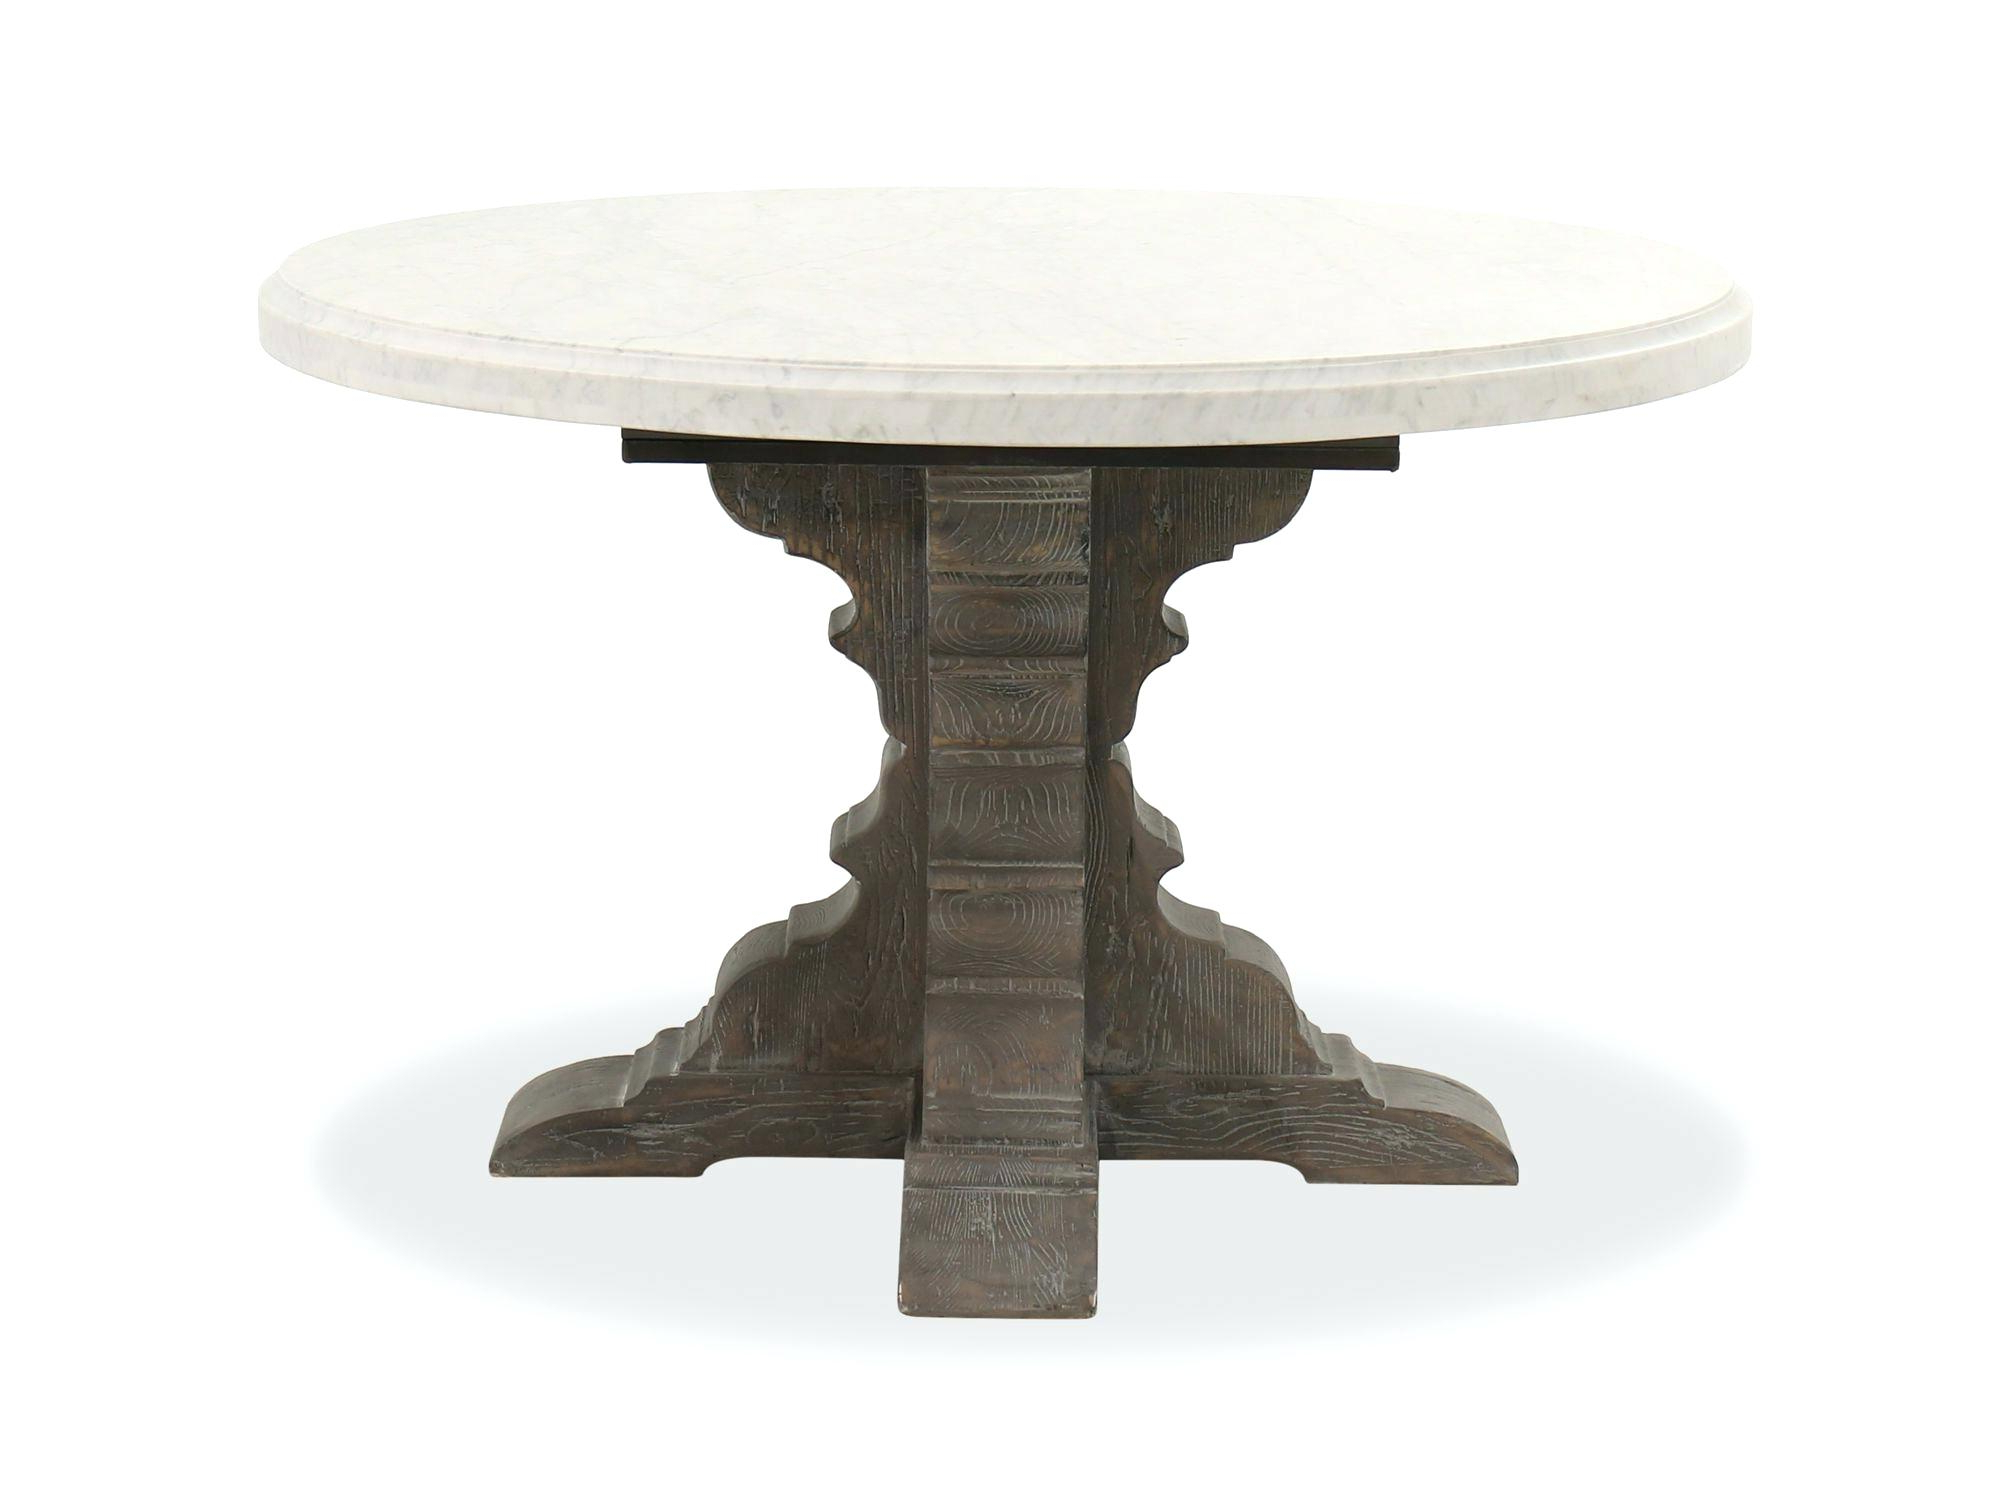 Alexandra Round Marble Pedestal Dining Tables Inside 2019 Marble Pedestal Dining Table – Meime (View 5 of 25)